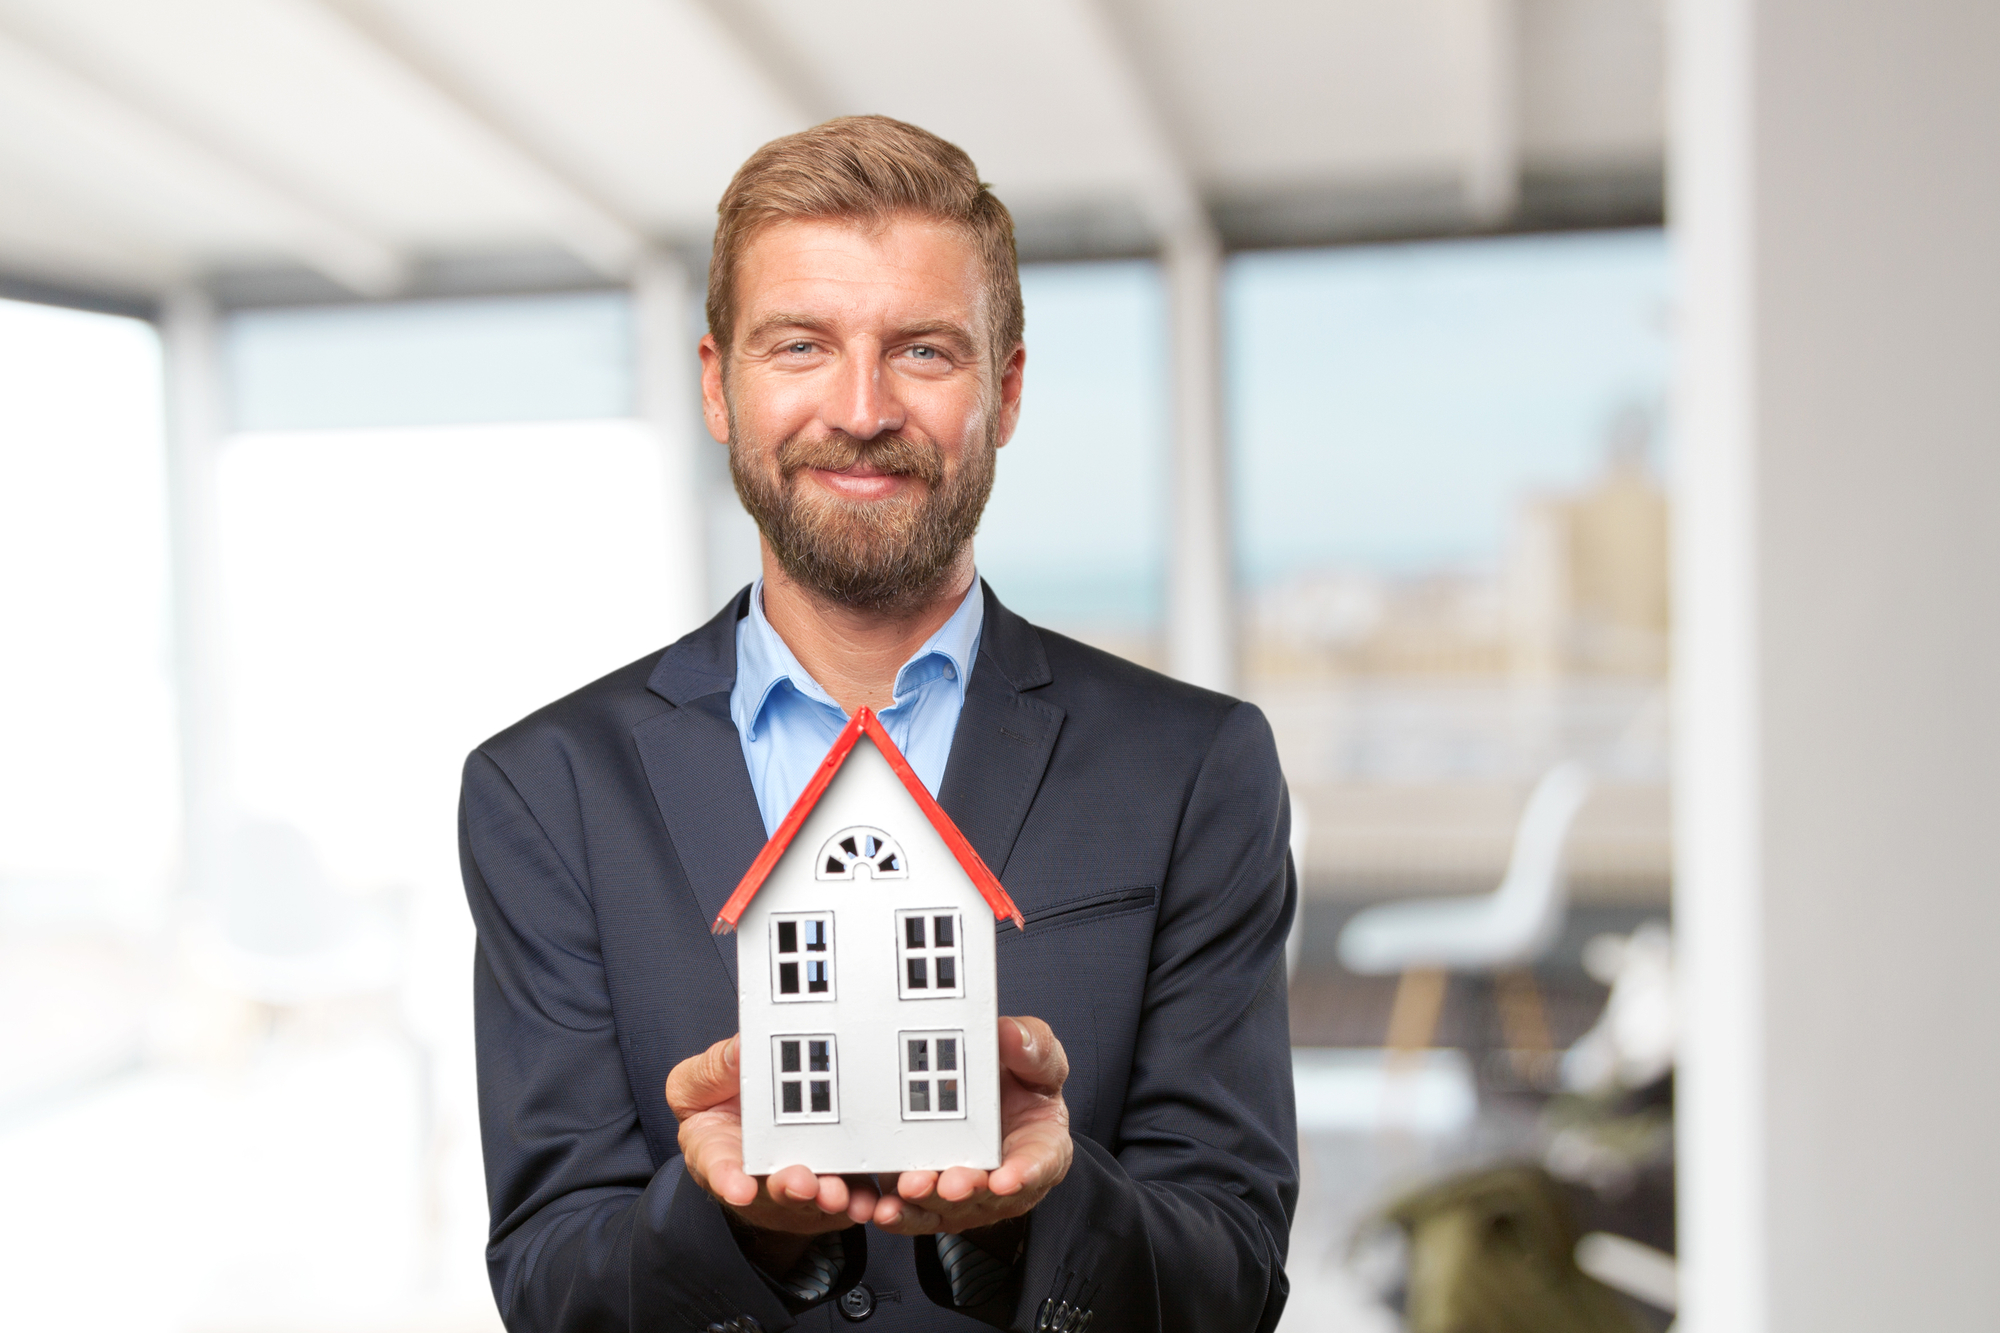 What Should Investors Look For in a Property Manager?